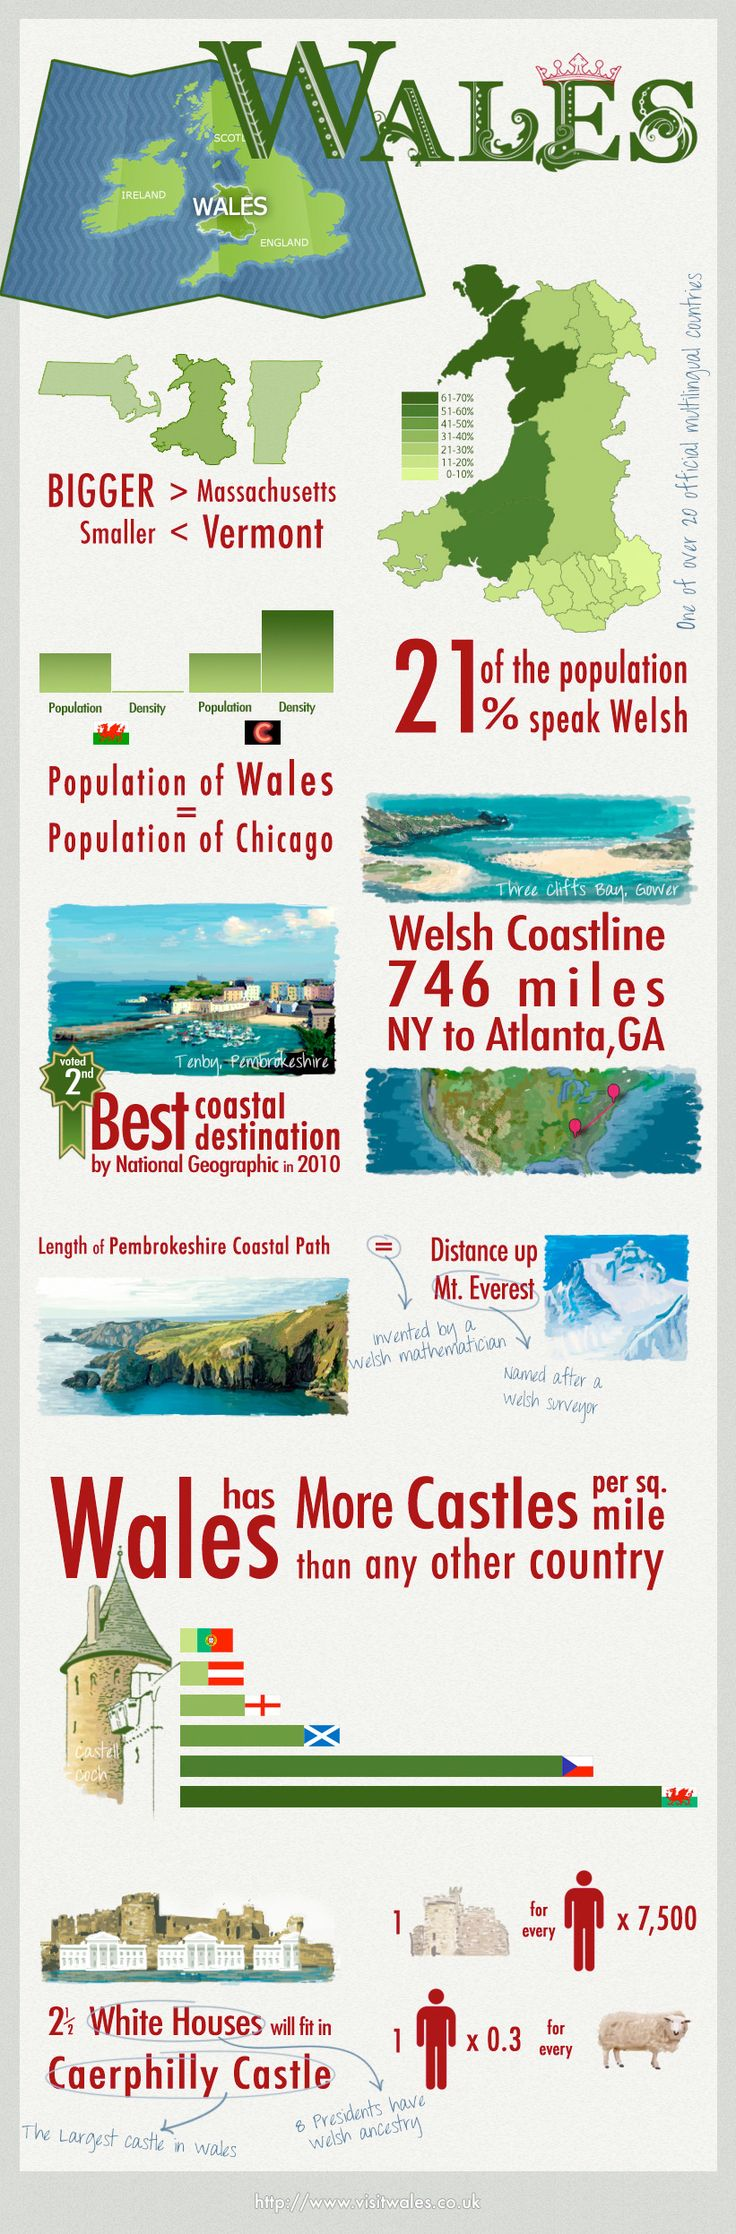 all-about-wales